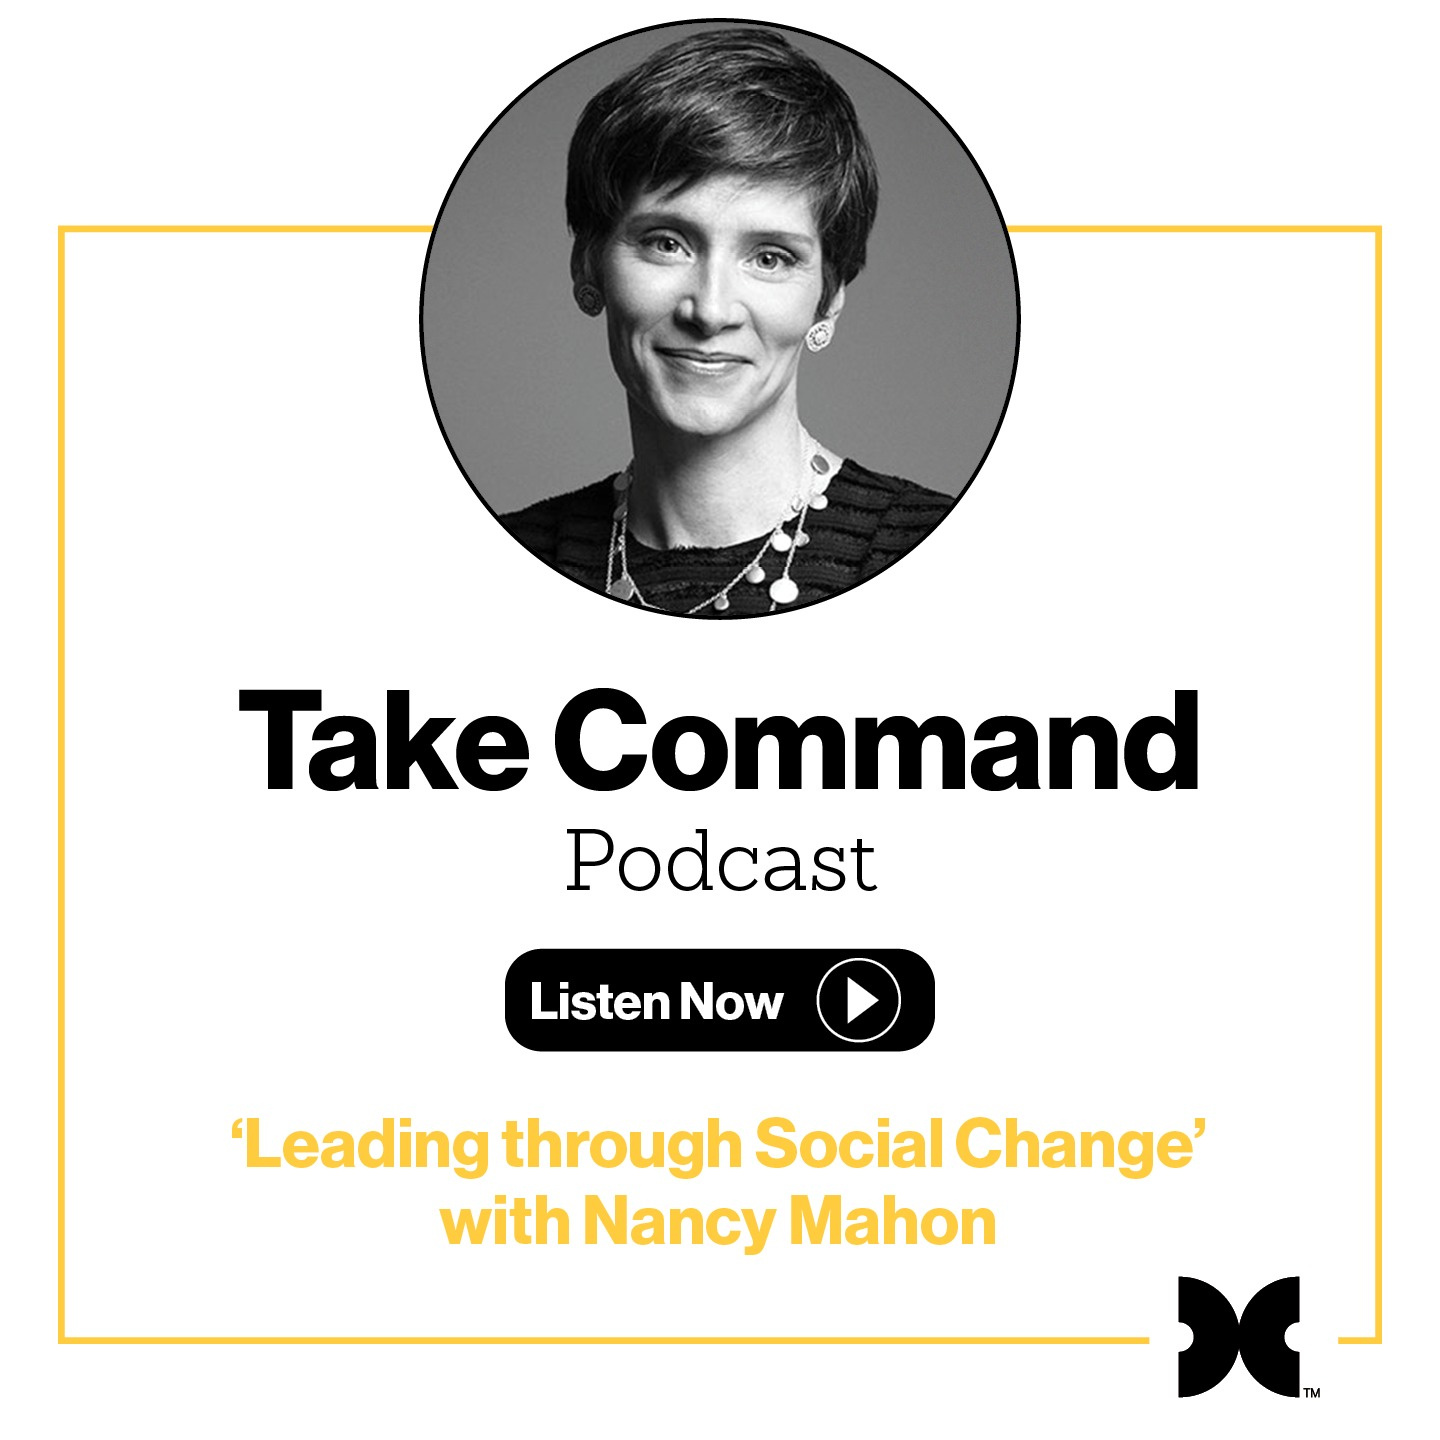 #7 'Leading Through Social Change' with Nancy Mahon